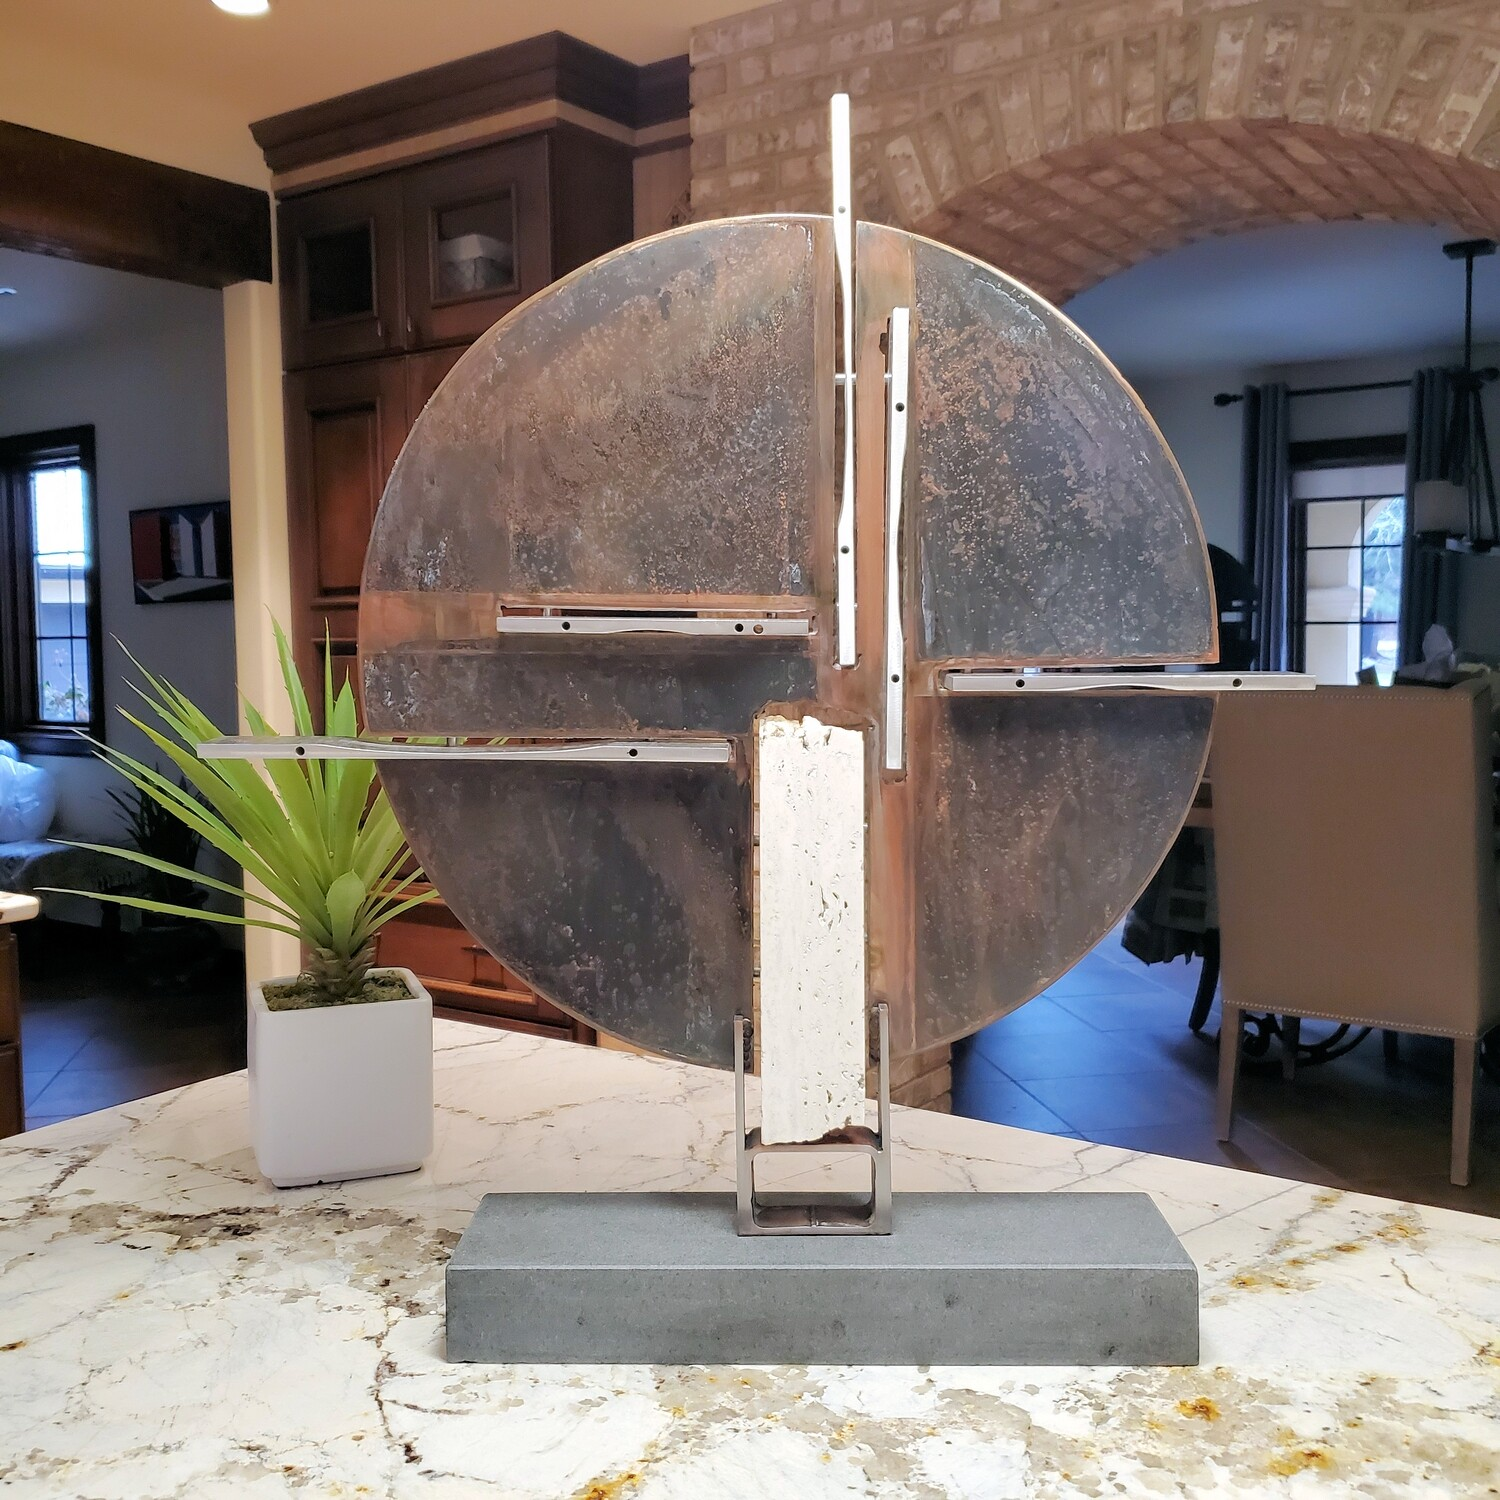 'Moonstruck' Steel, Limestone & Aluminum Metal Abstract Modern Industrial Sculpture